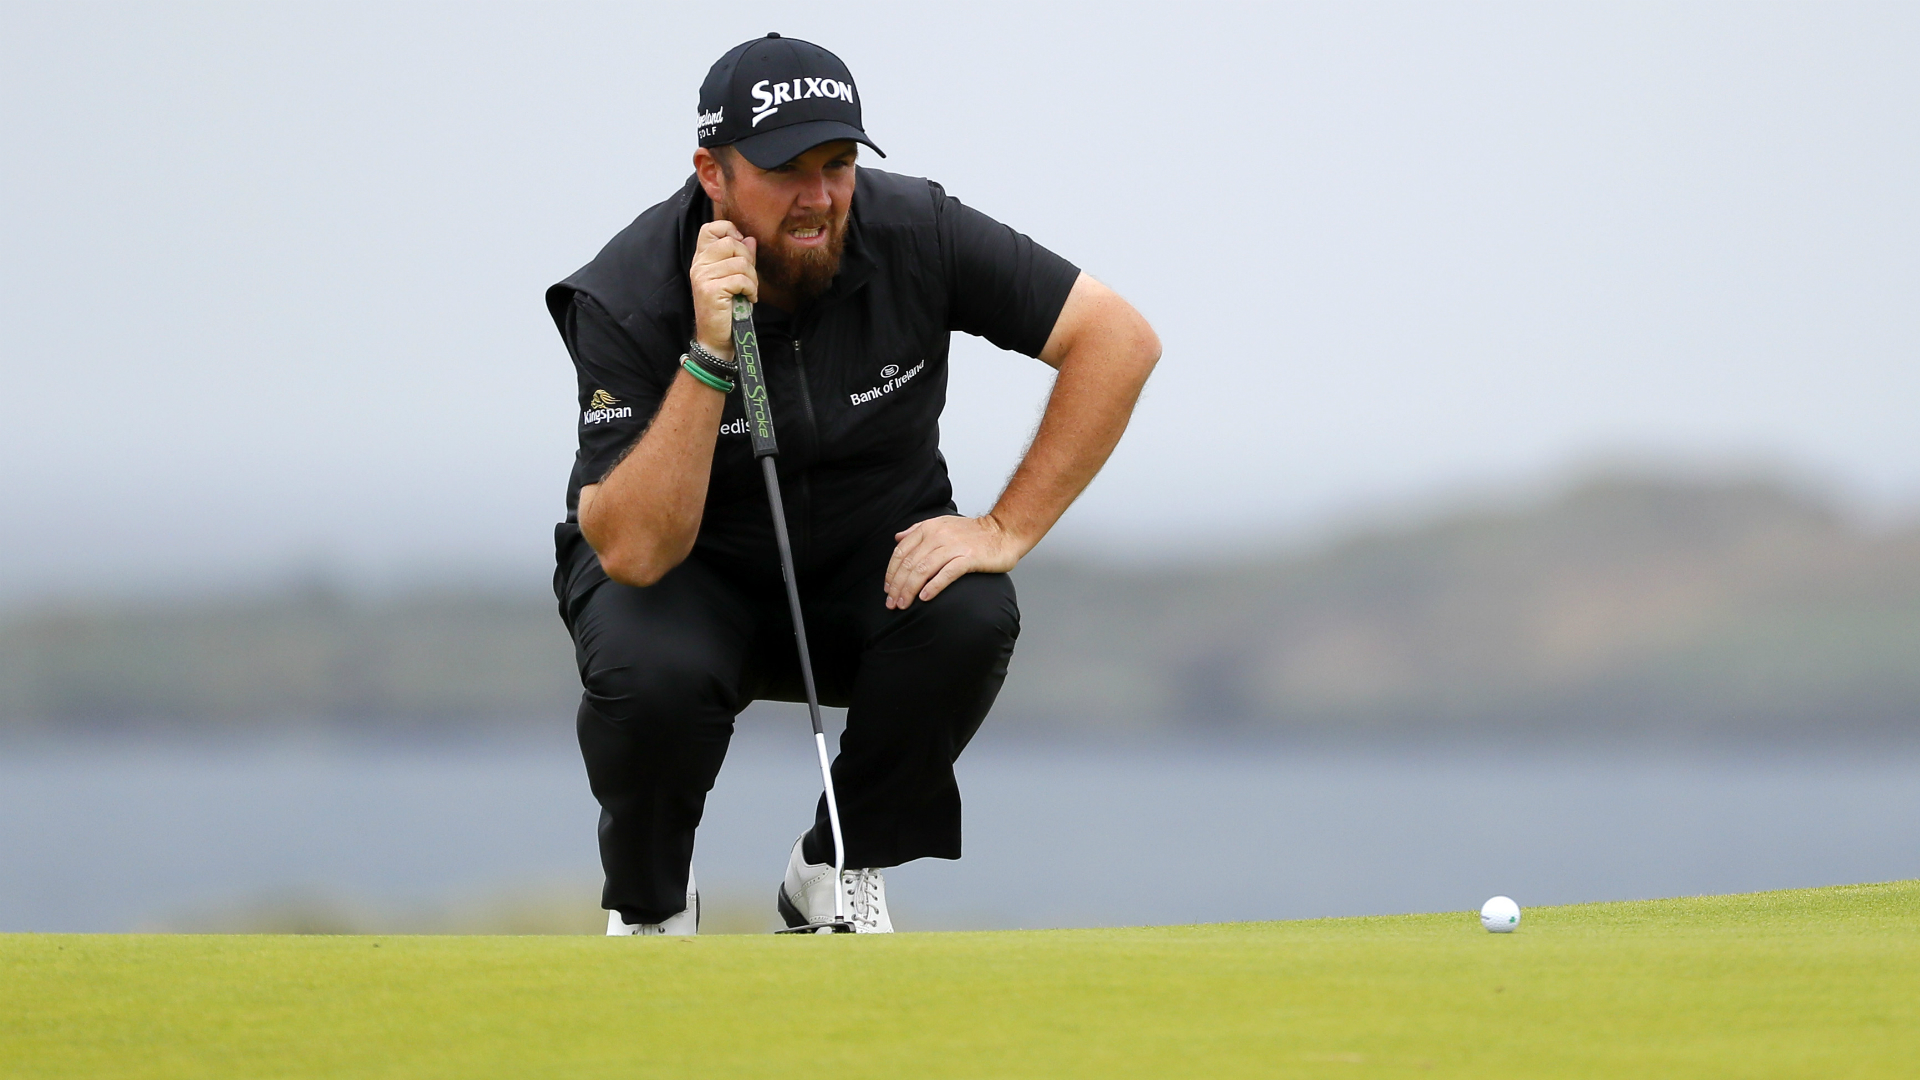 Lowry edges closer to Open glory at Royal Portrush